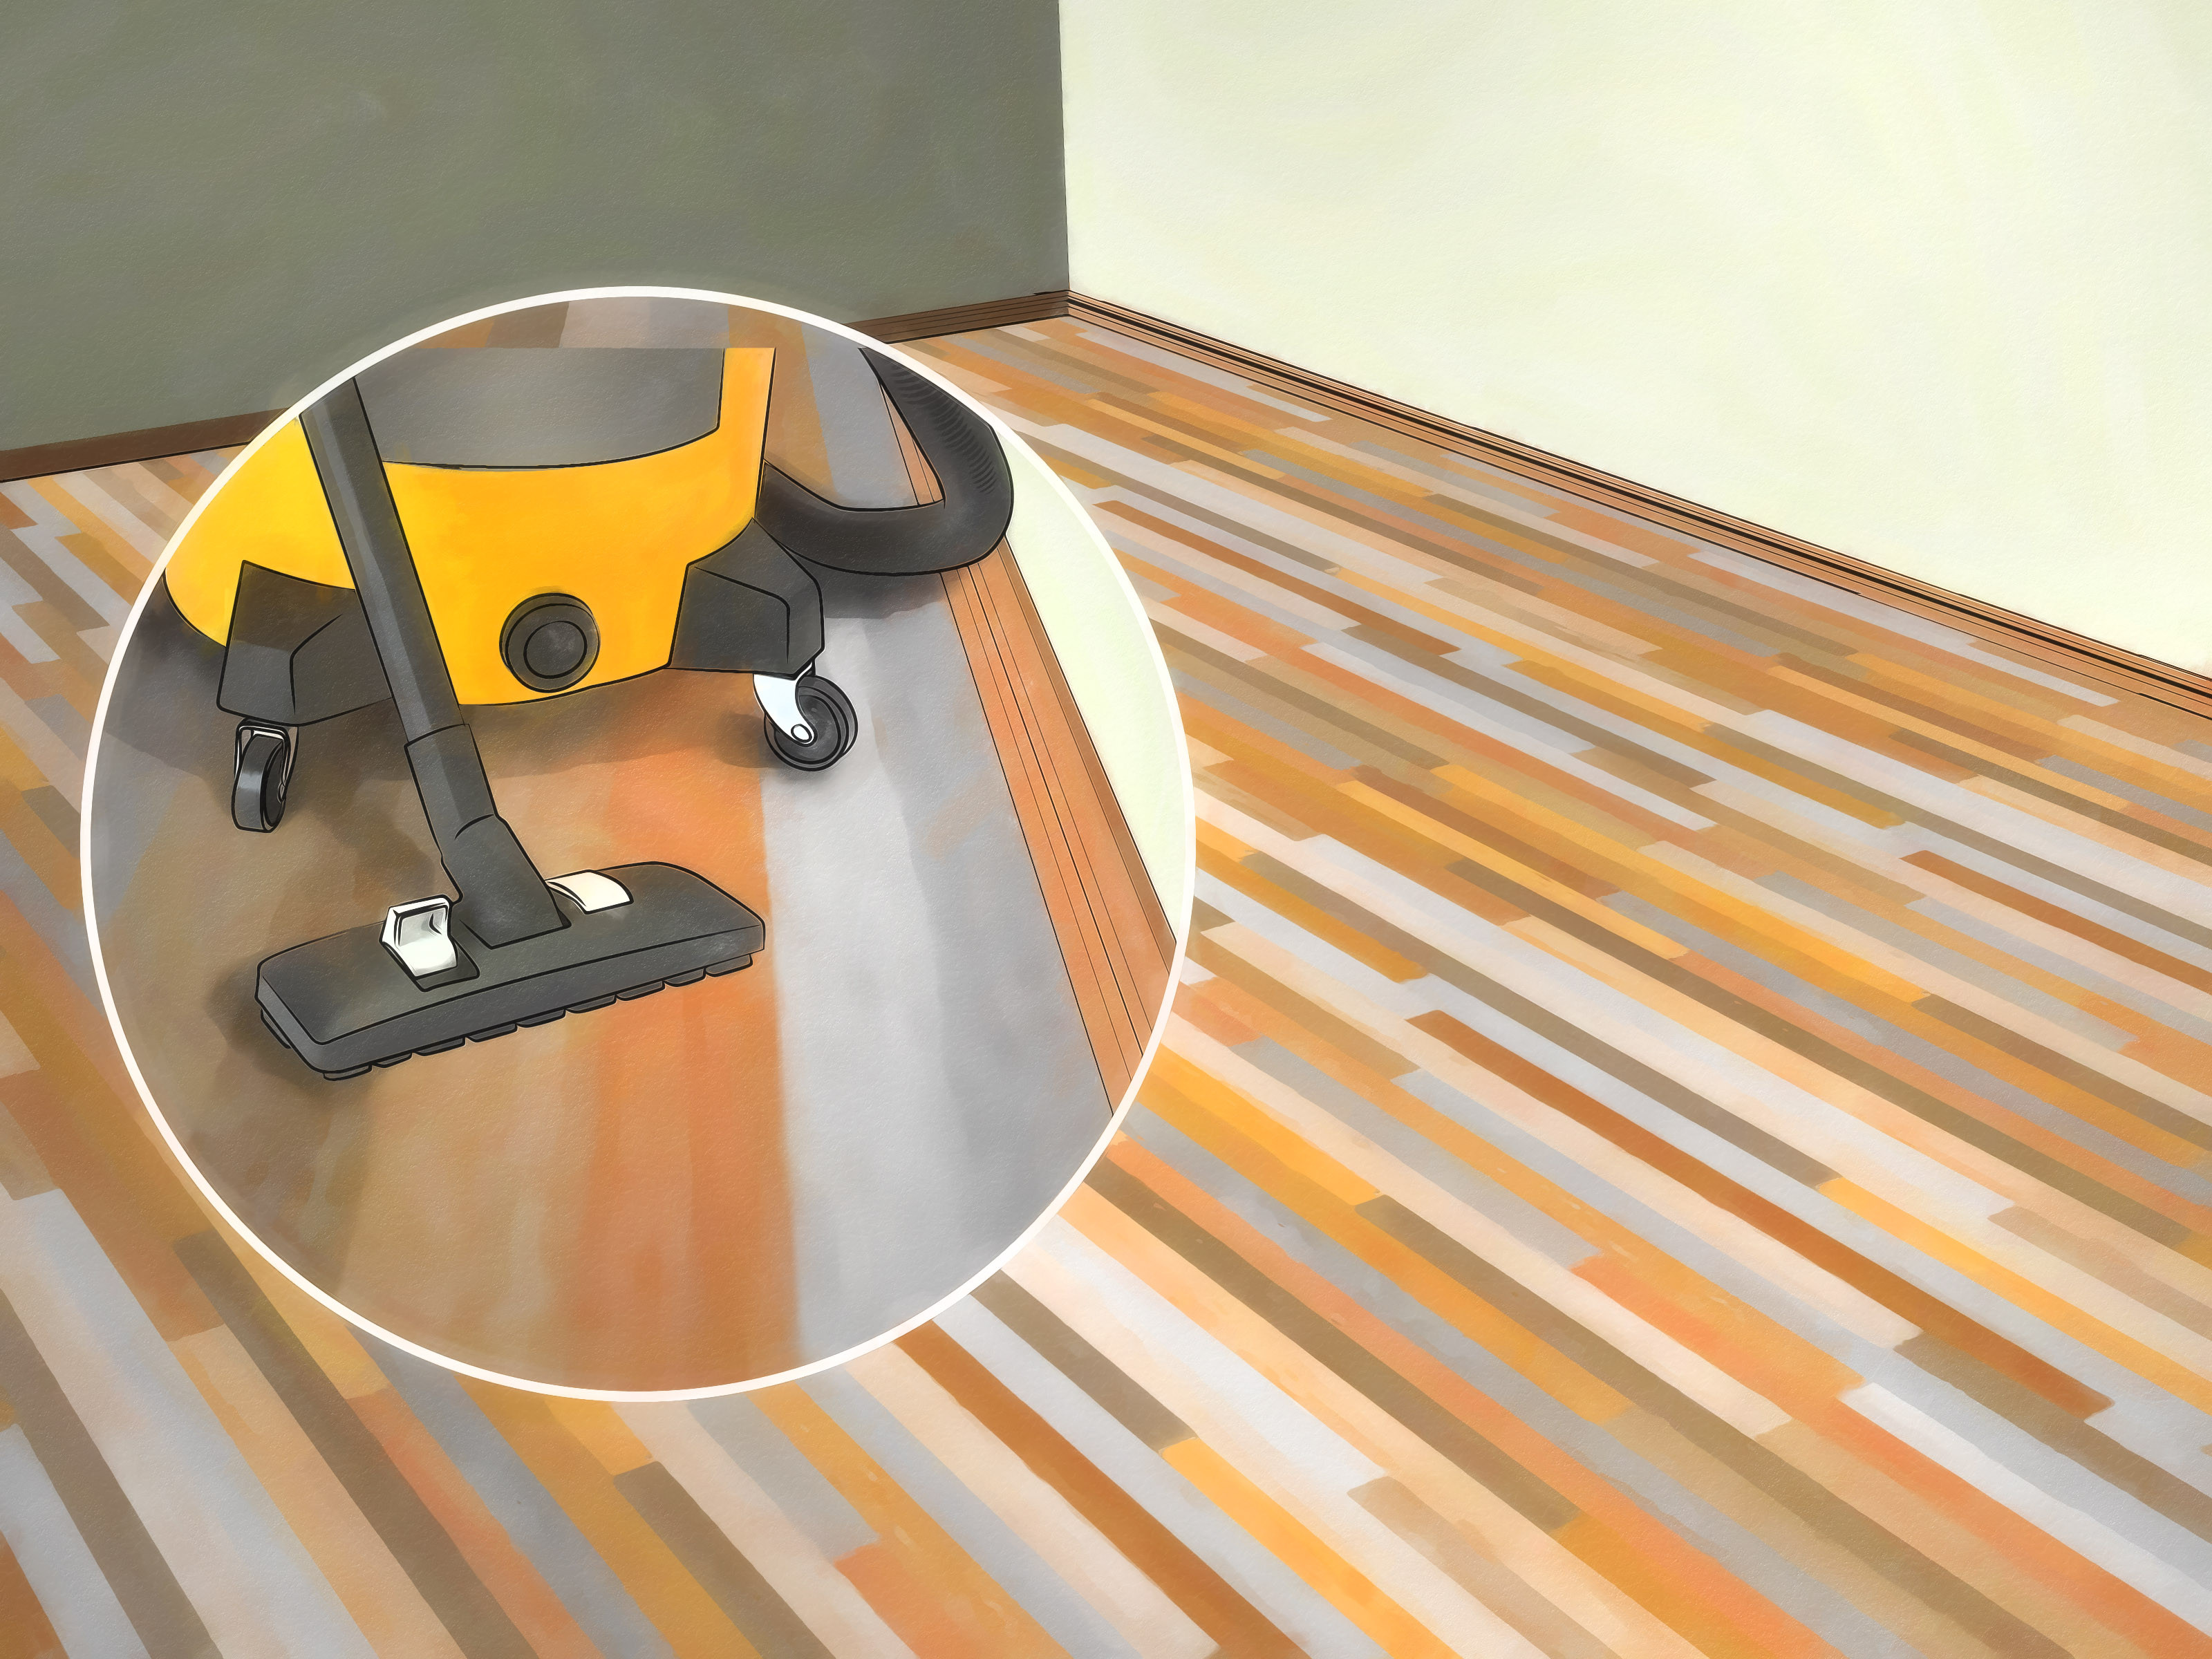 installing prefinished hardwood floors yourself of how to sand hardwood floors with pictures wikihow with sand hardwood floors step 22